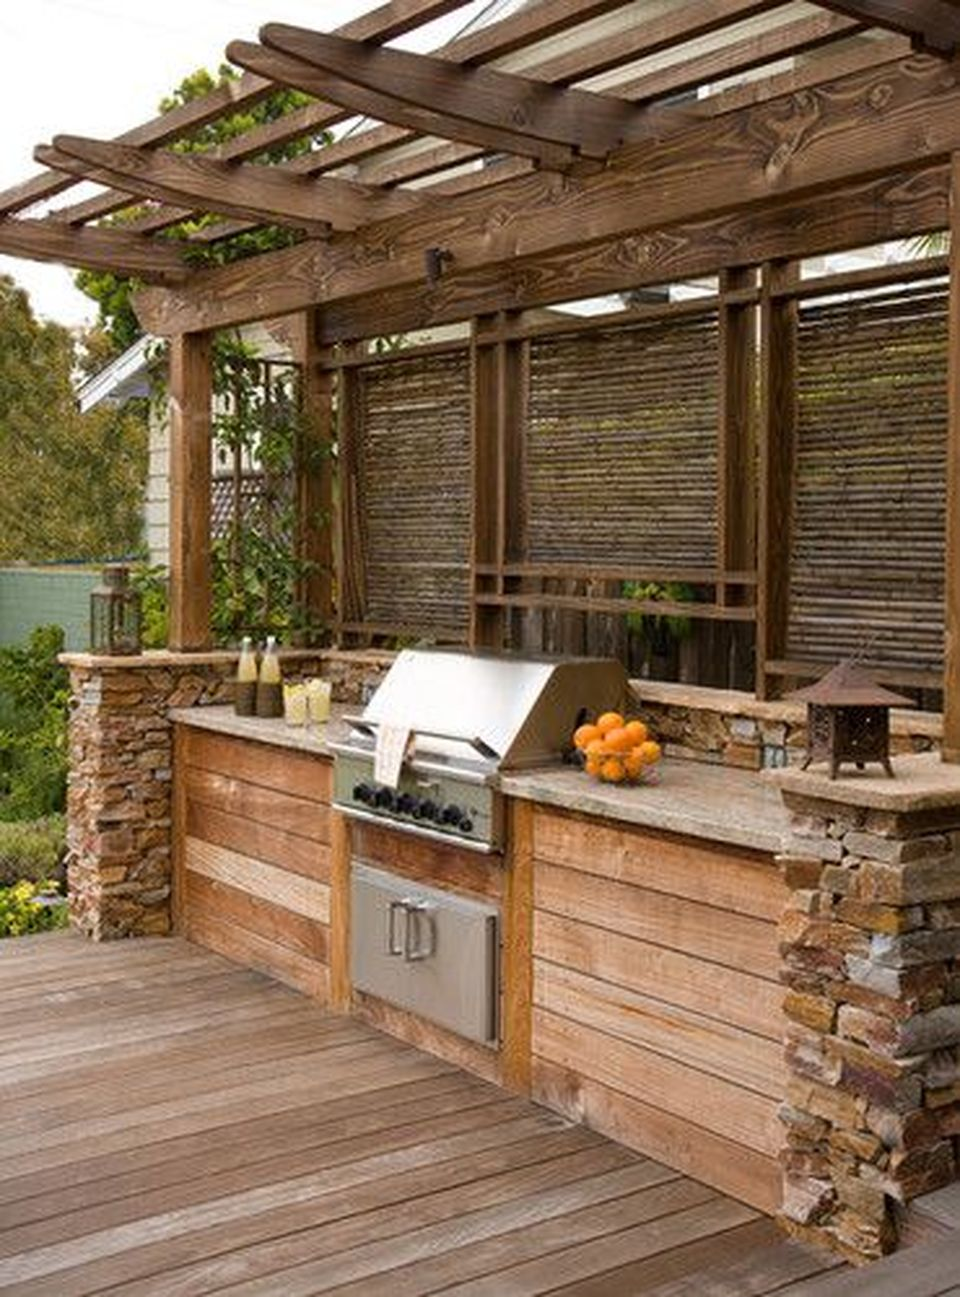 Awesome Yard and Outdoor Kitchen Design Ideas 24 - Hoommy.com